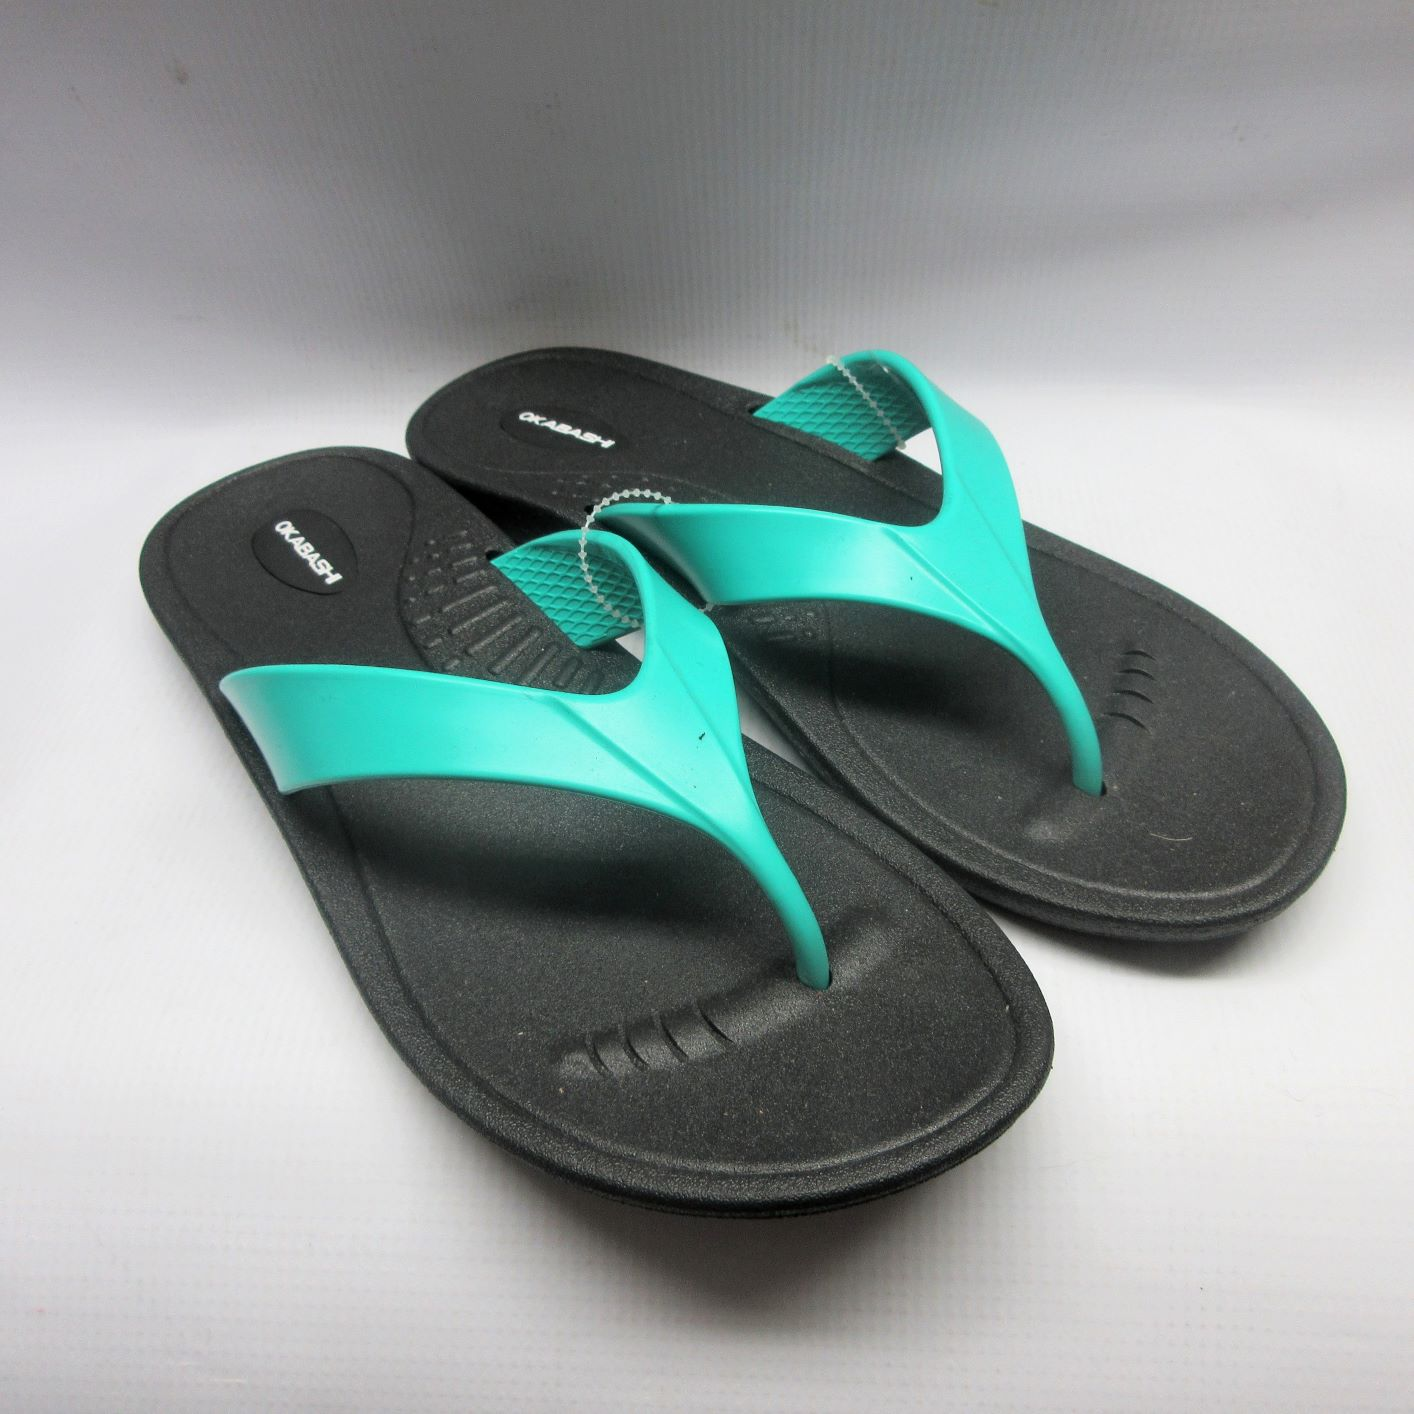 aaf7bff48c360 Okabashi Sandals Women Marina Flip Flops in Black Sea Size Large — Cabaline